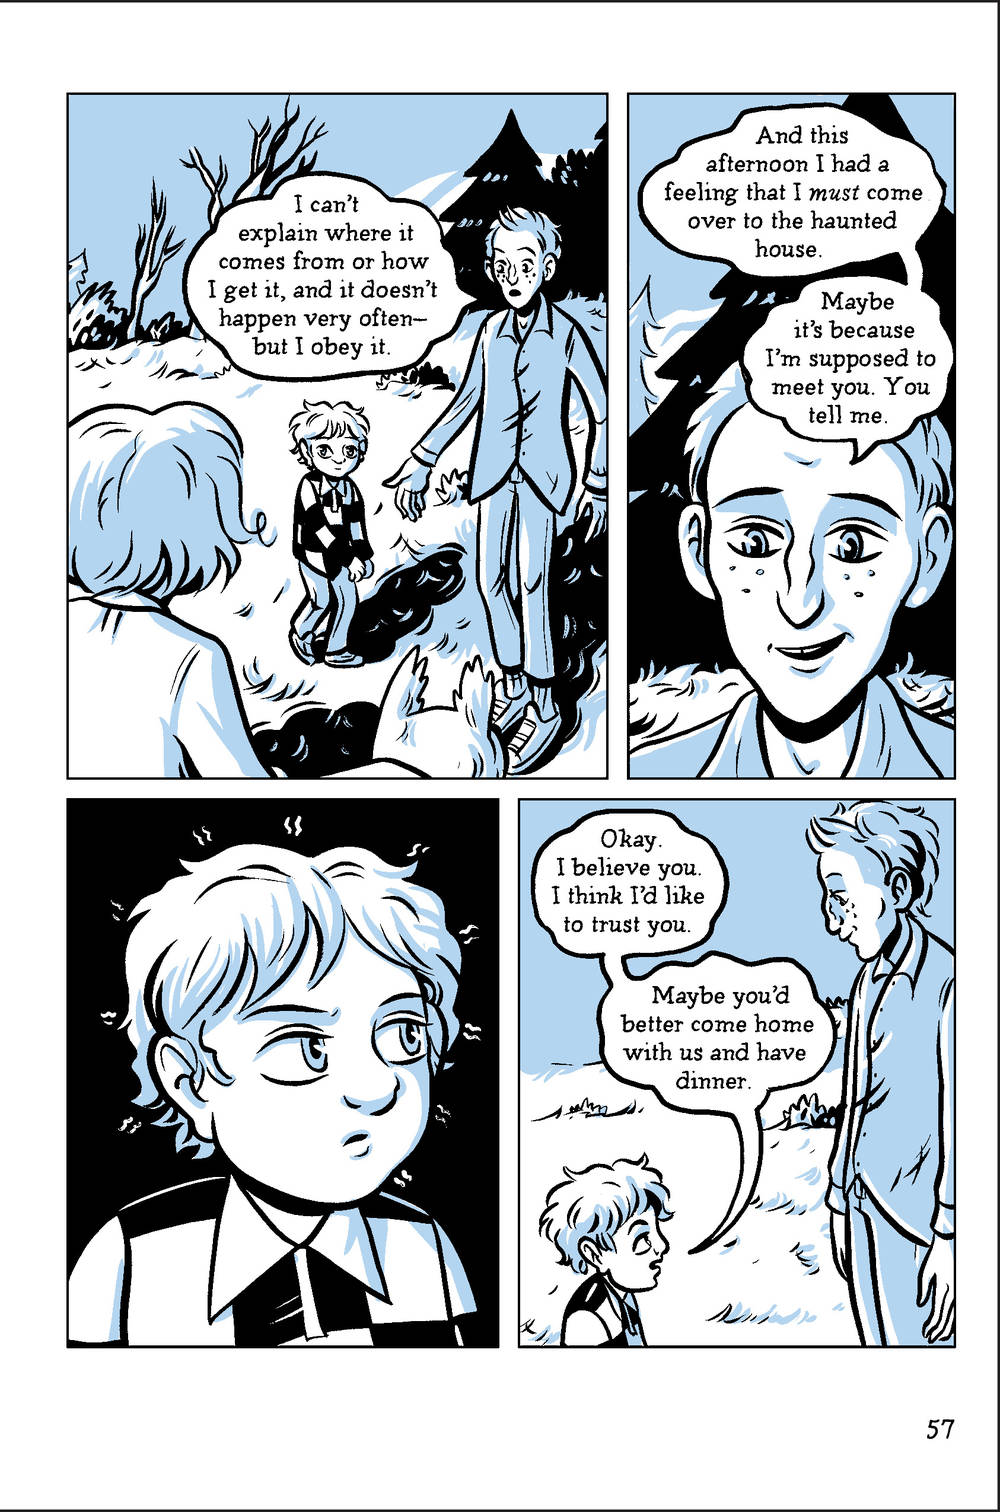 A Wrinkle In Time Worthy Graphic Novel Adaptation Boing